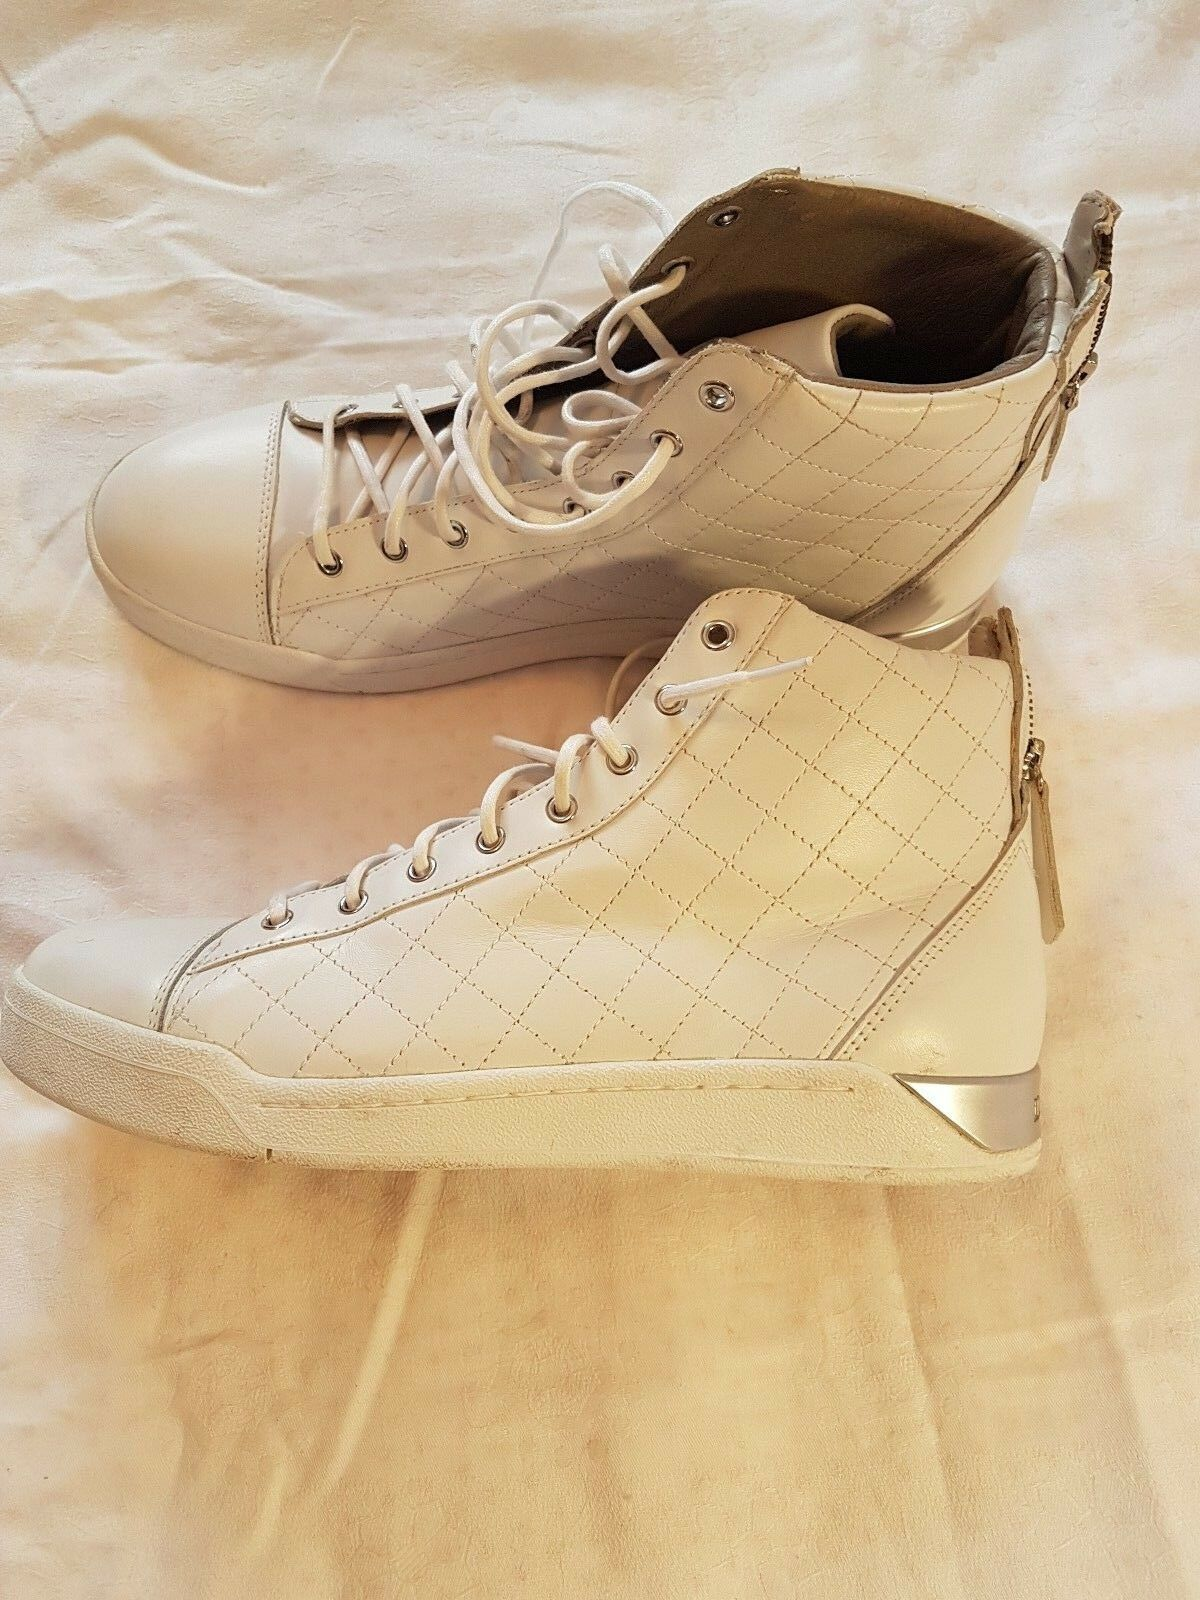 DIESEL  Shoes  size 12